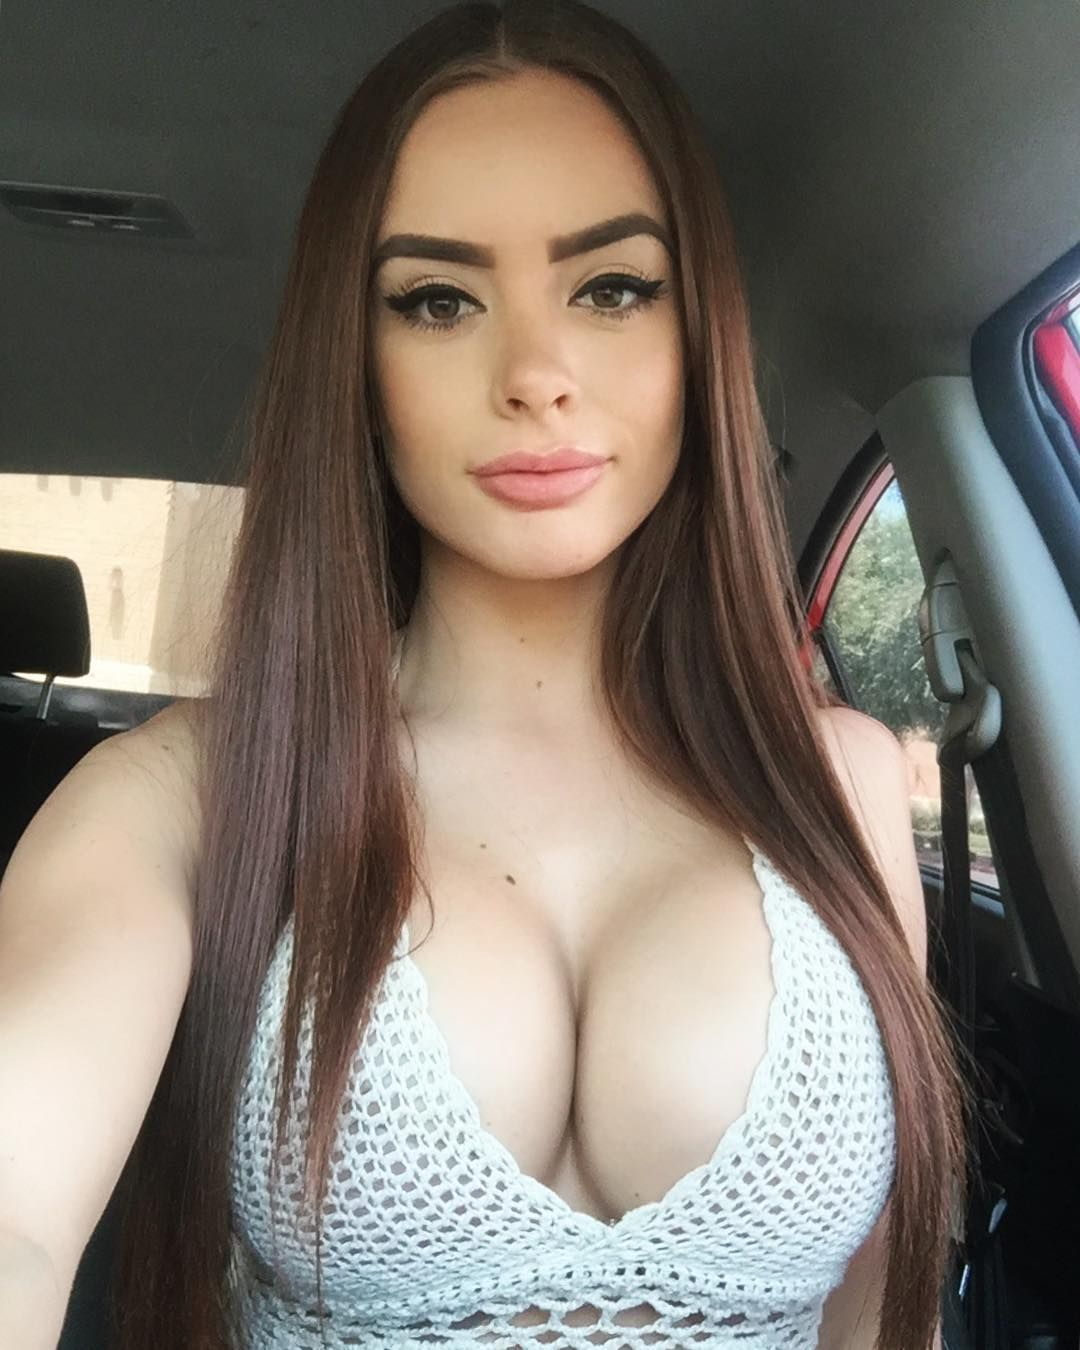 awesome bbw chick with amazing boobs